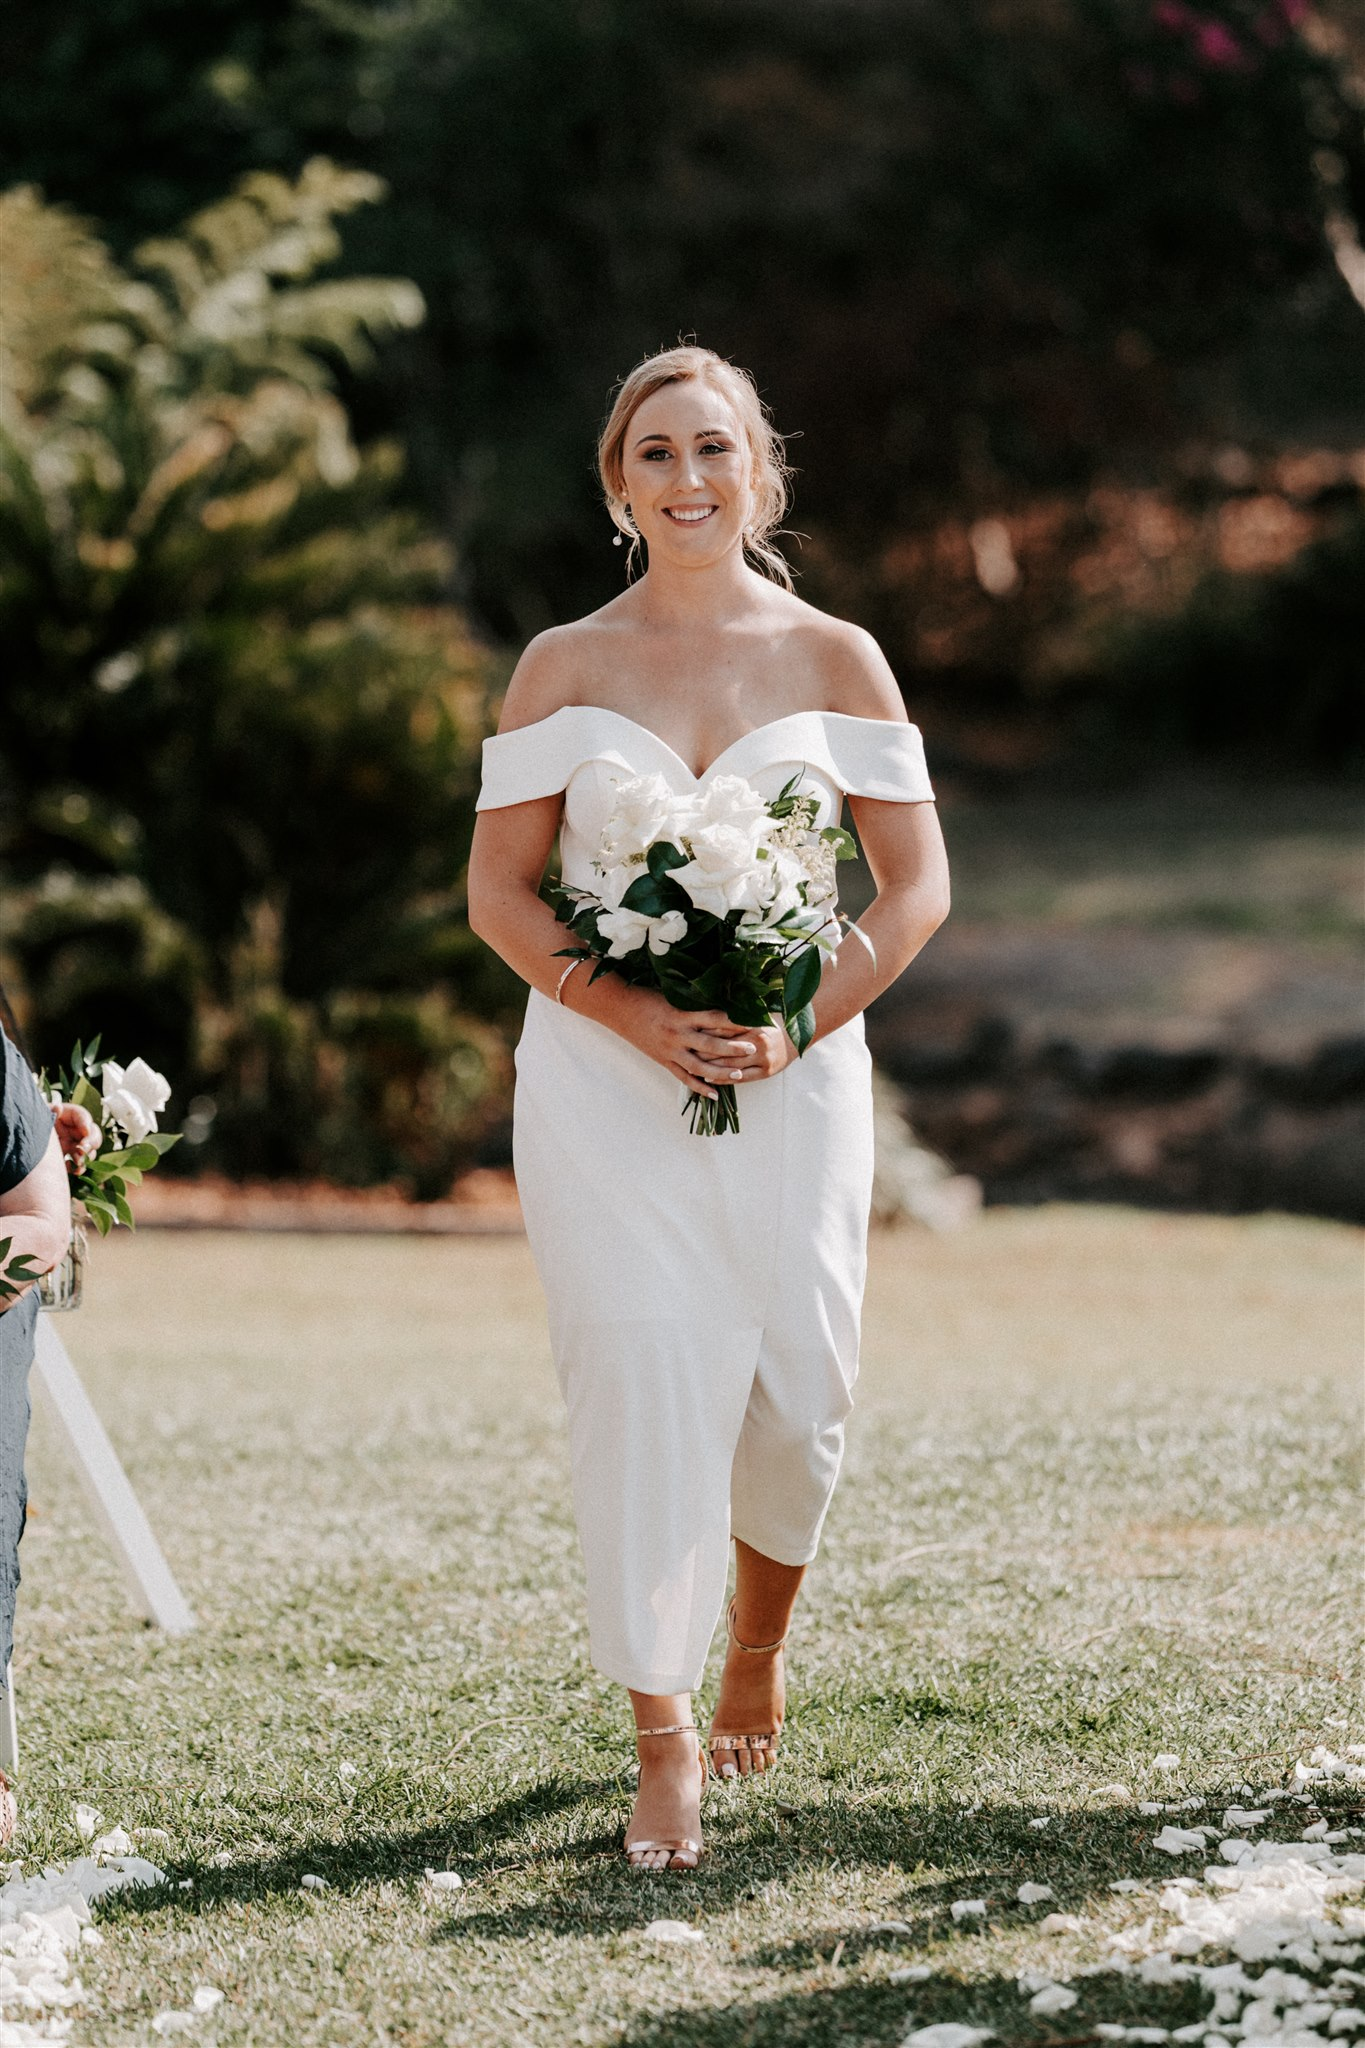 Bridesmaid bouquet in white and green tones